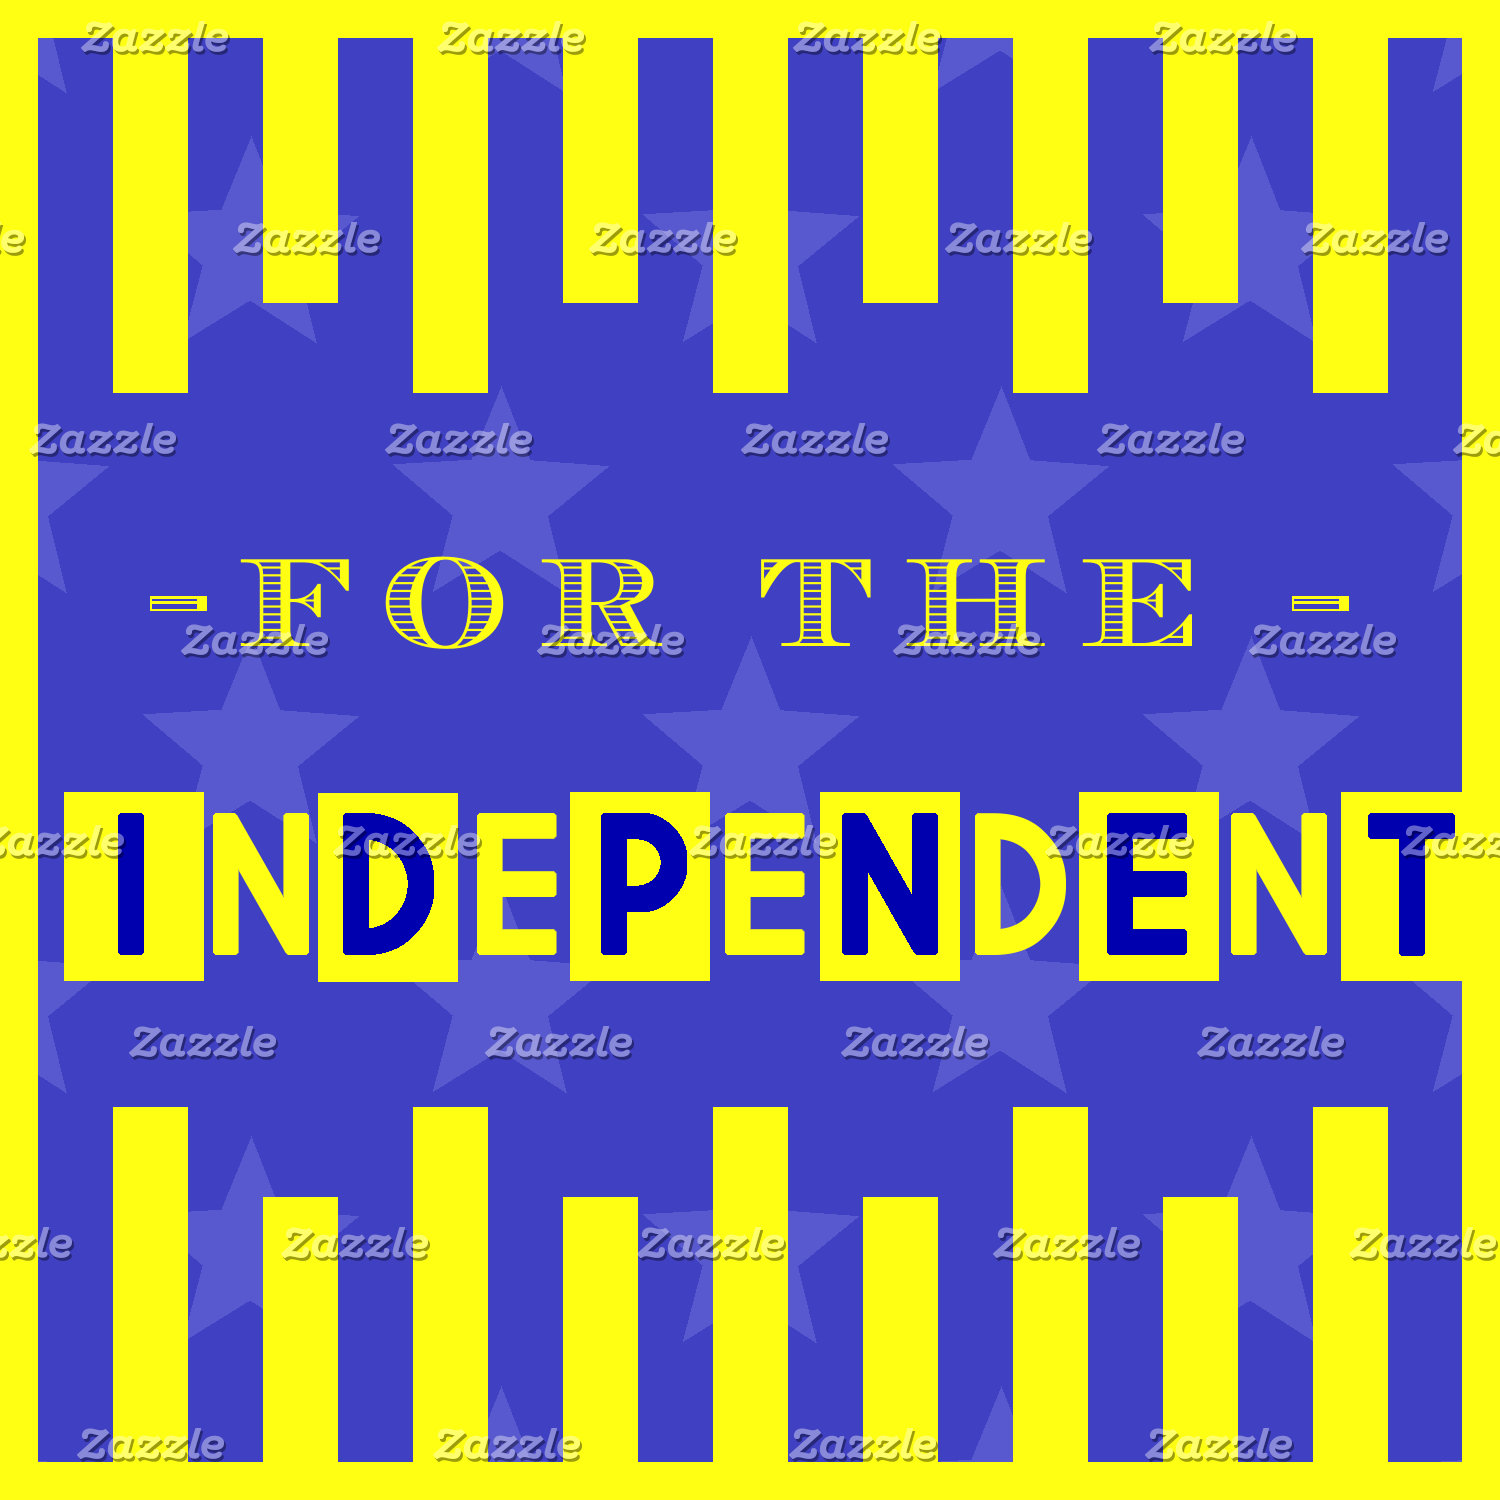 for Independents